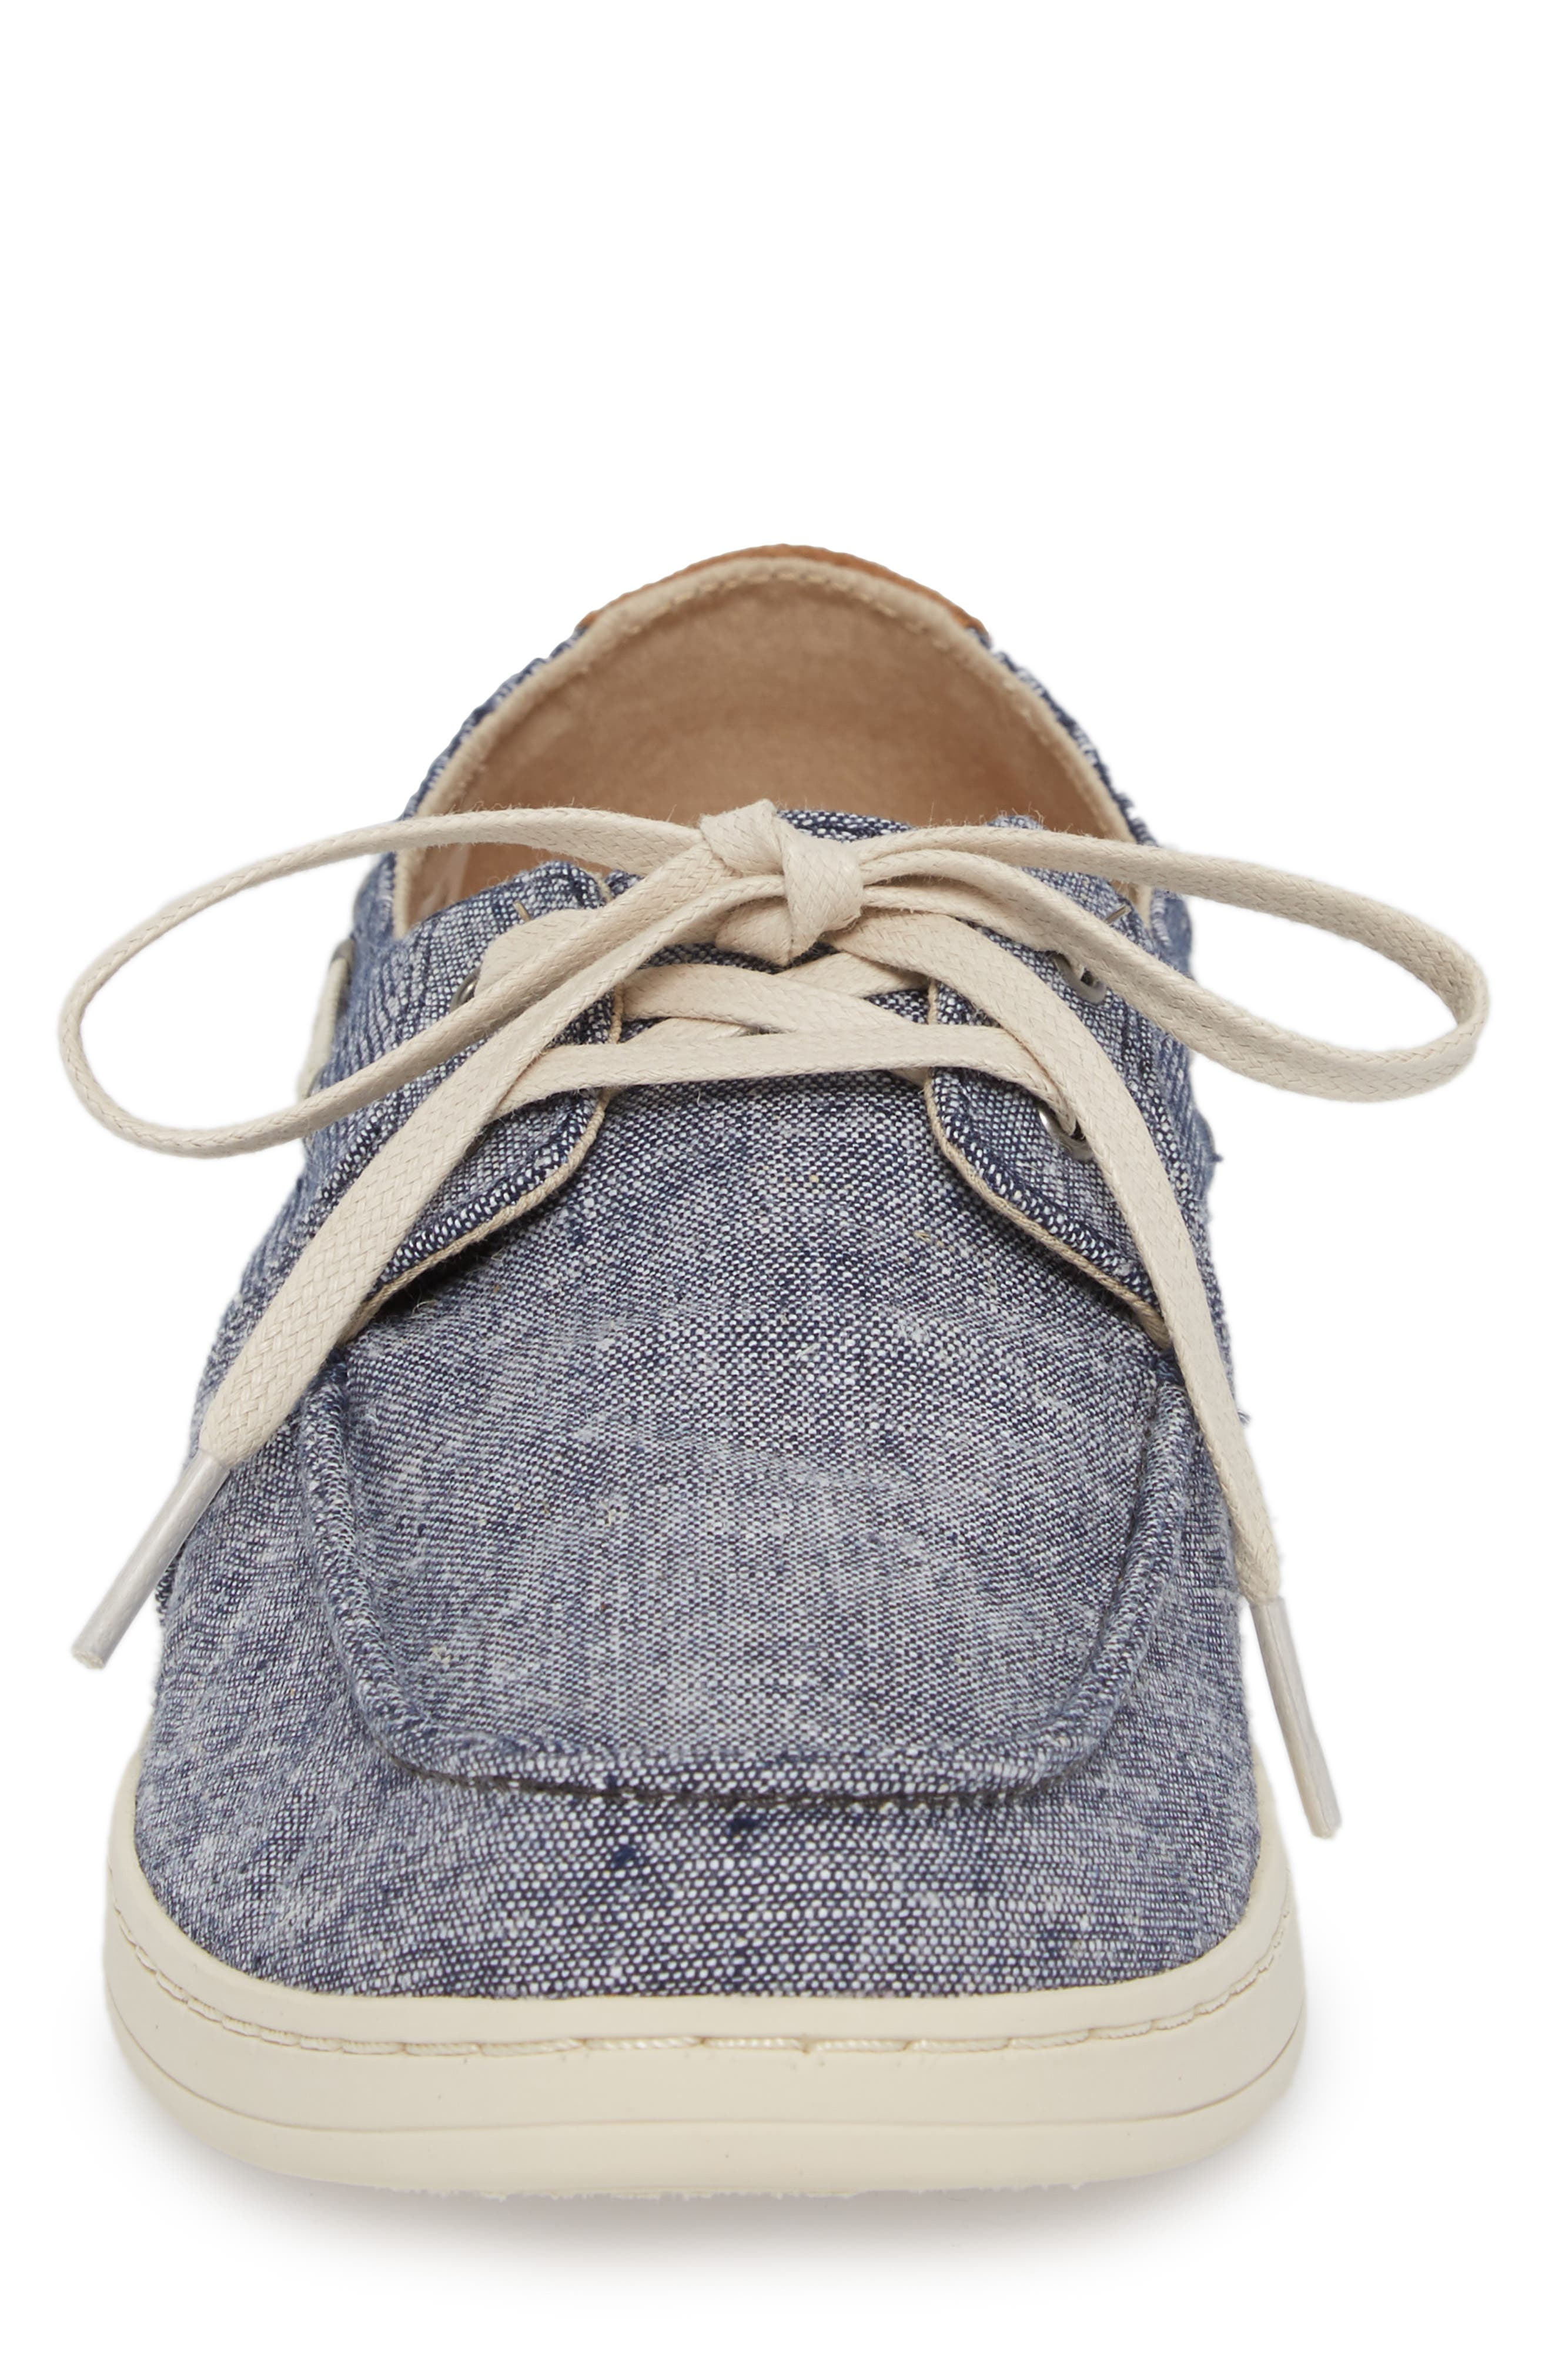 'Culver' Boat Shoe,                             Alternate thumbnail 4, color,                             CANVAS EMBROIDERED WHALE